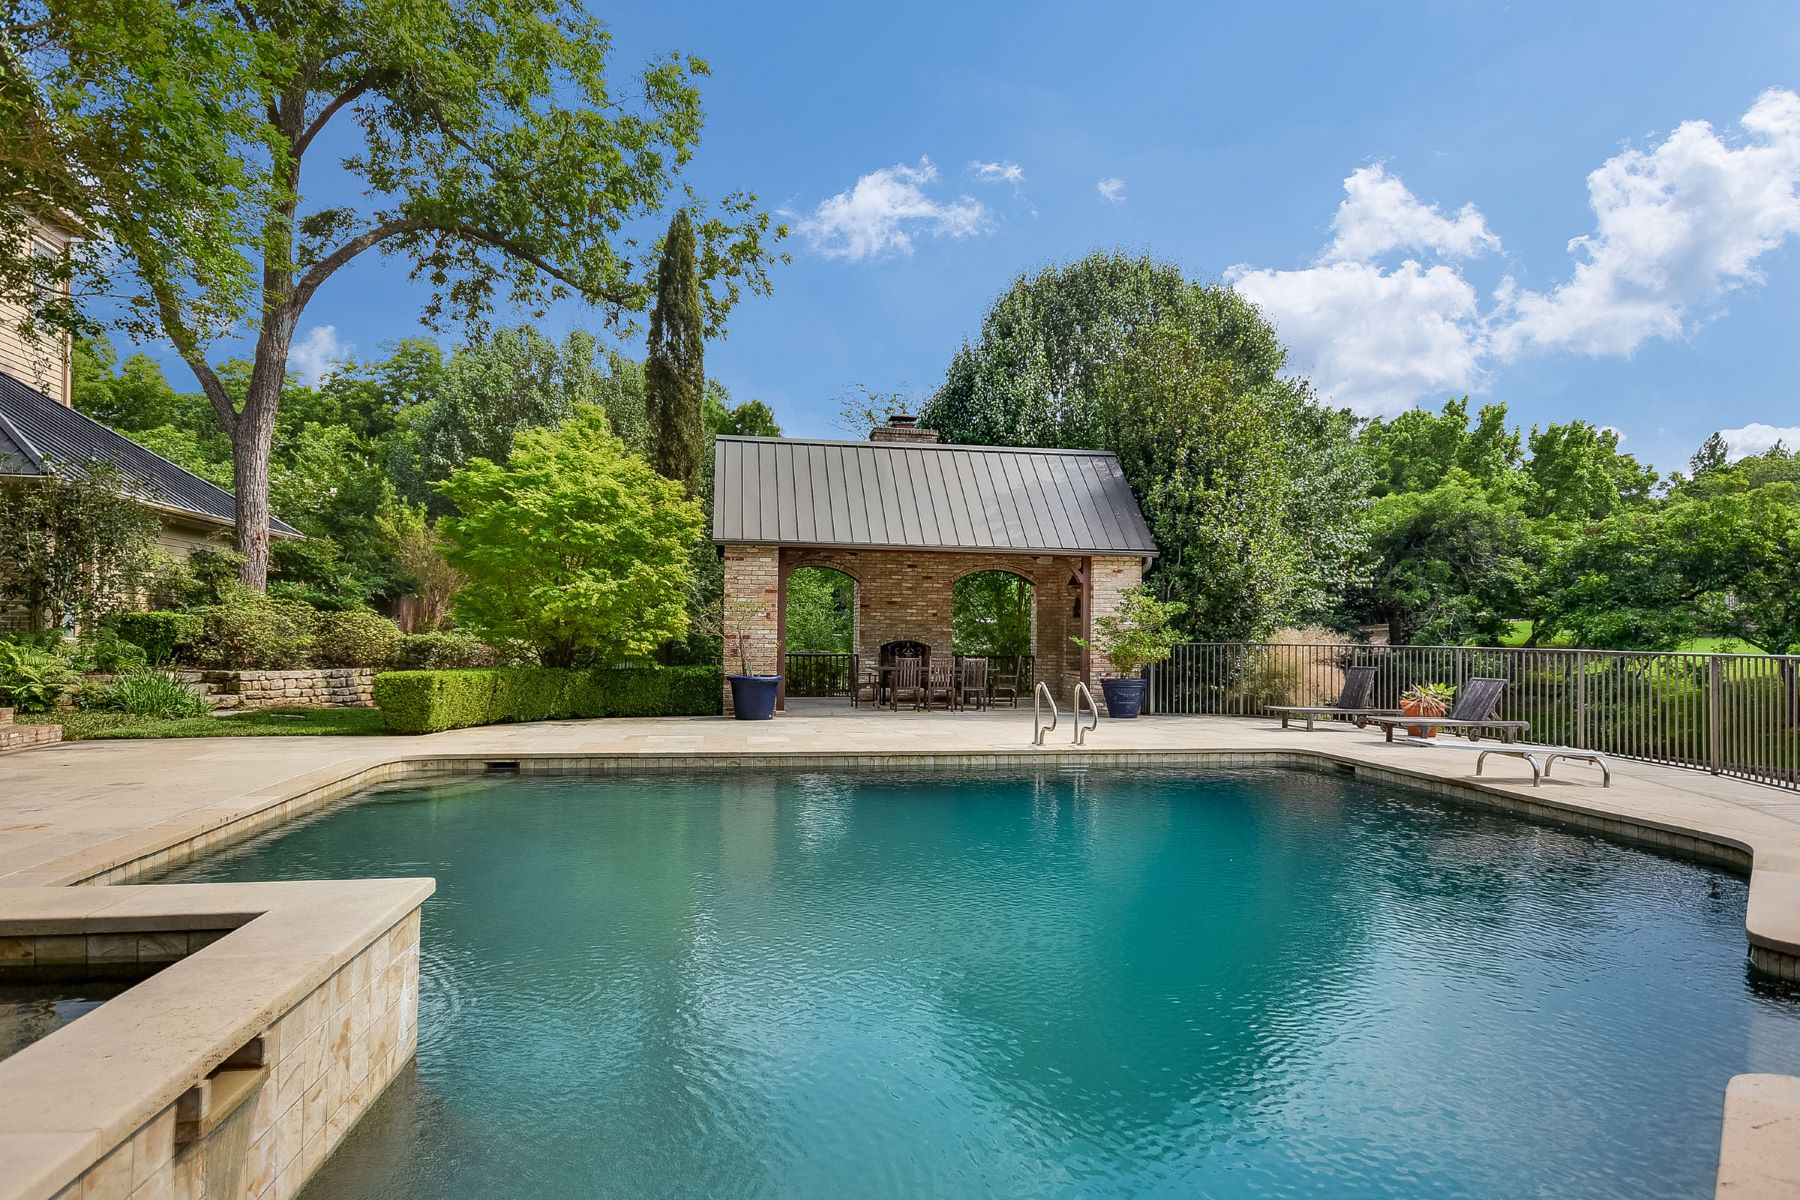 Additional photo for property listing at 2314 Island Wood Rd, Austin 2314 Island Wood Rd Austin, Texas 78733 United States